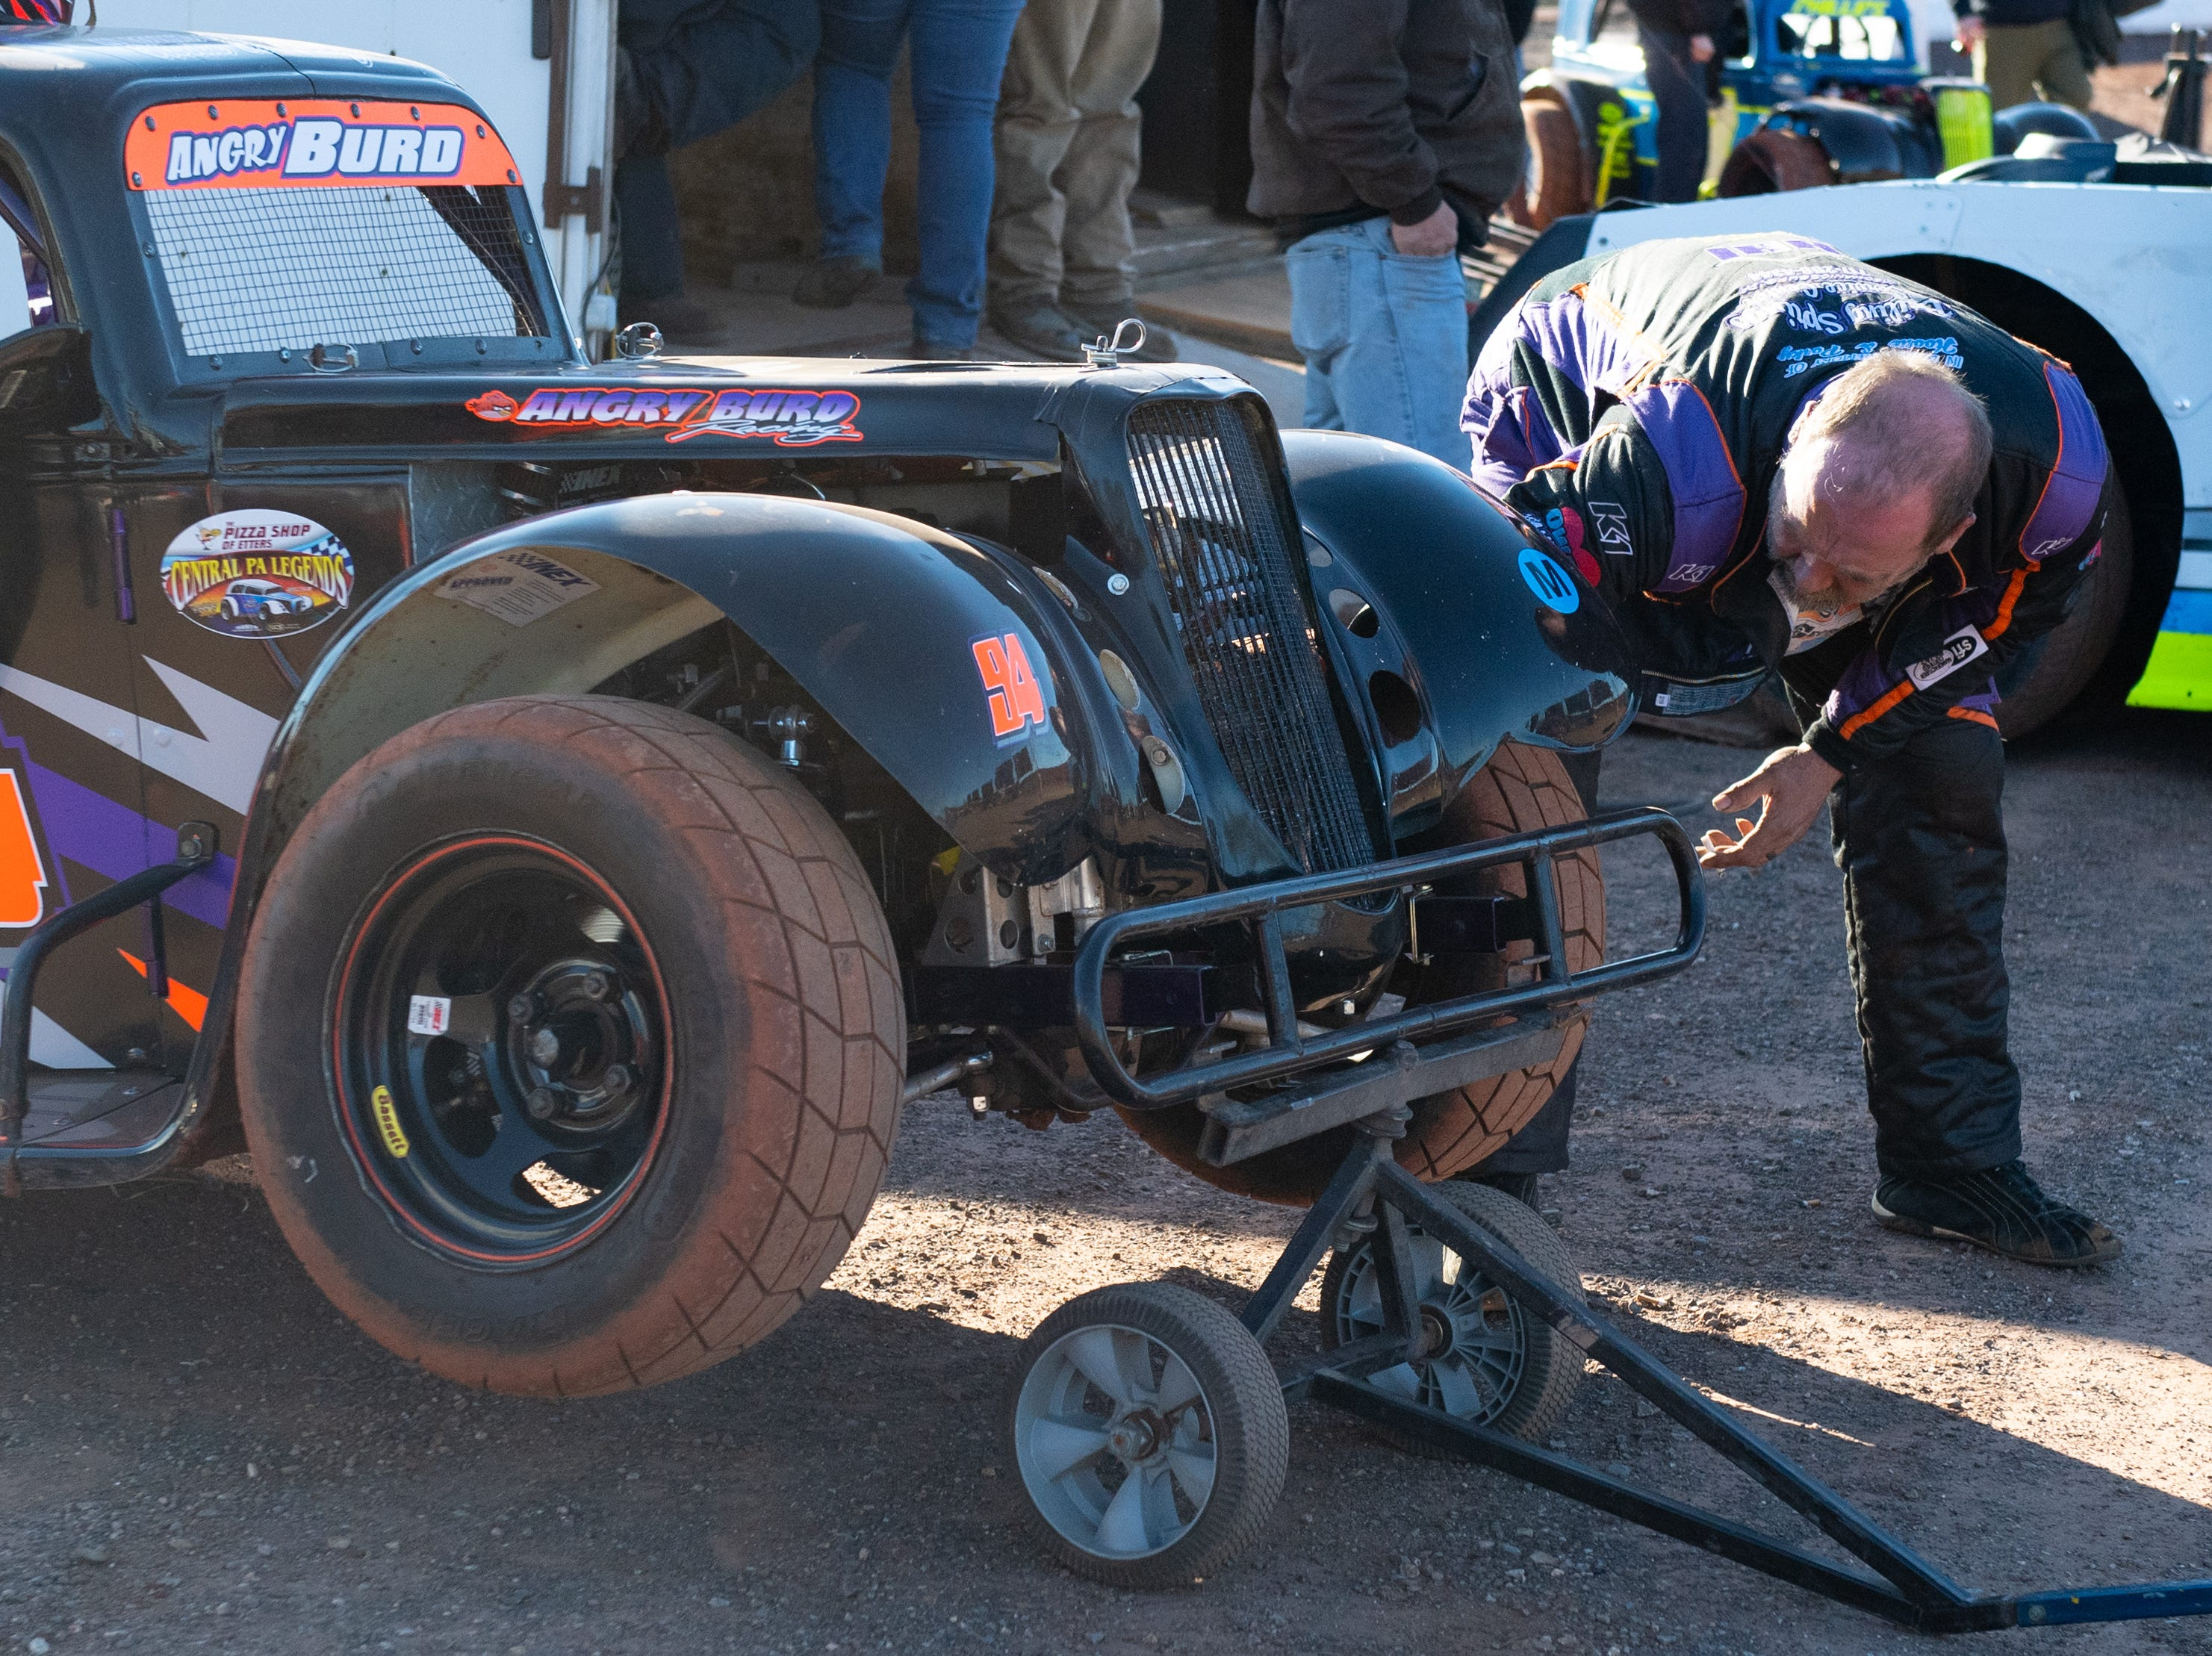 Greg Burd secures his wheels during the 2019 season opener at BAPS Motor Speedway, March 23, 2019.